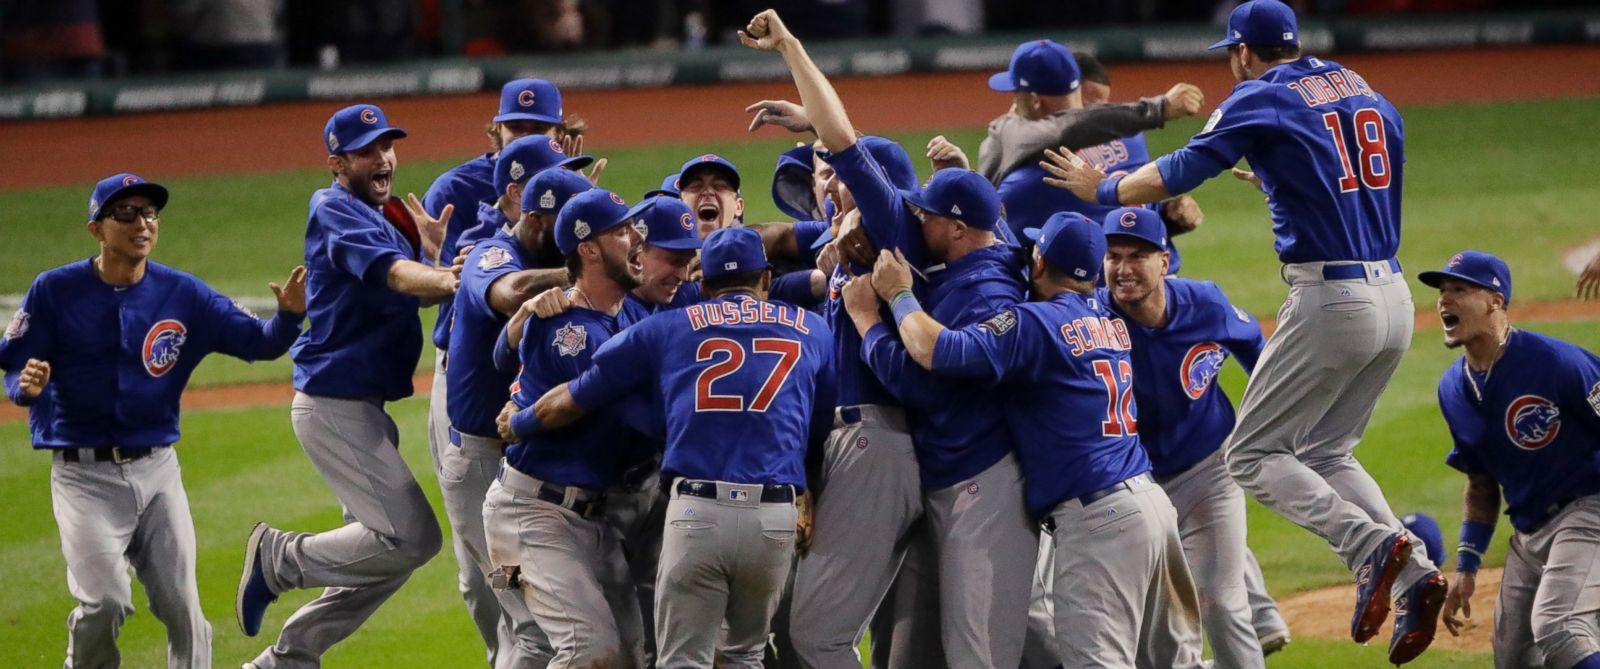 ap-cubs-win-world-series-jc-161103_12x5_1600